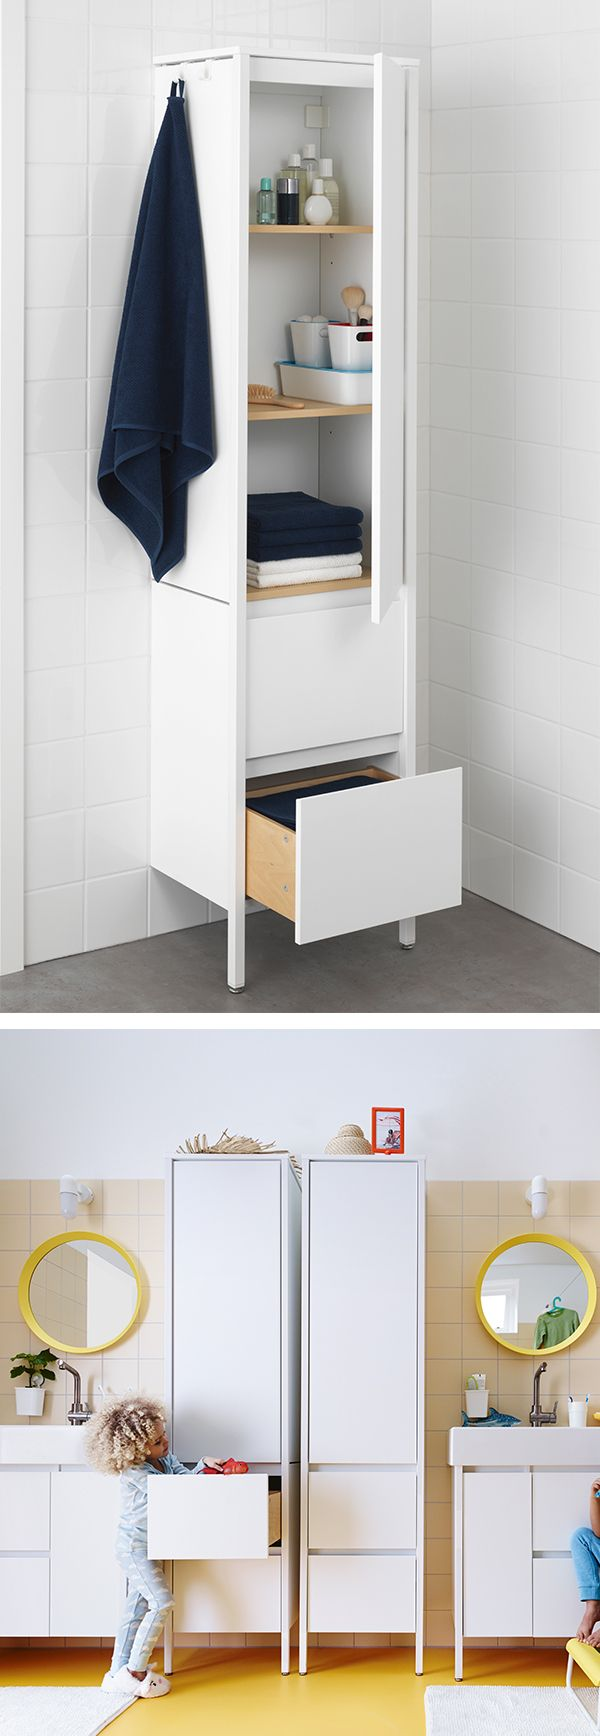 add extra storage to your bathroom without adding extra space the ikea yddingen high cabinet - Bathroom Design Ideas Ikea